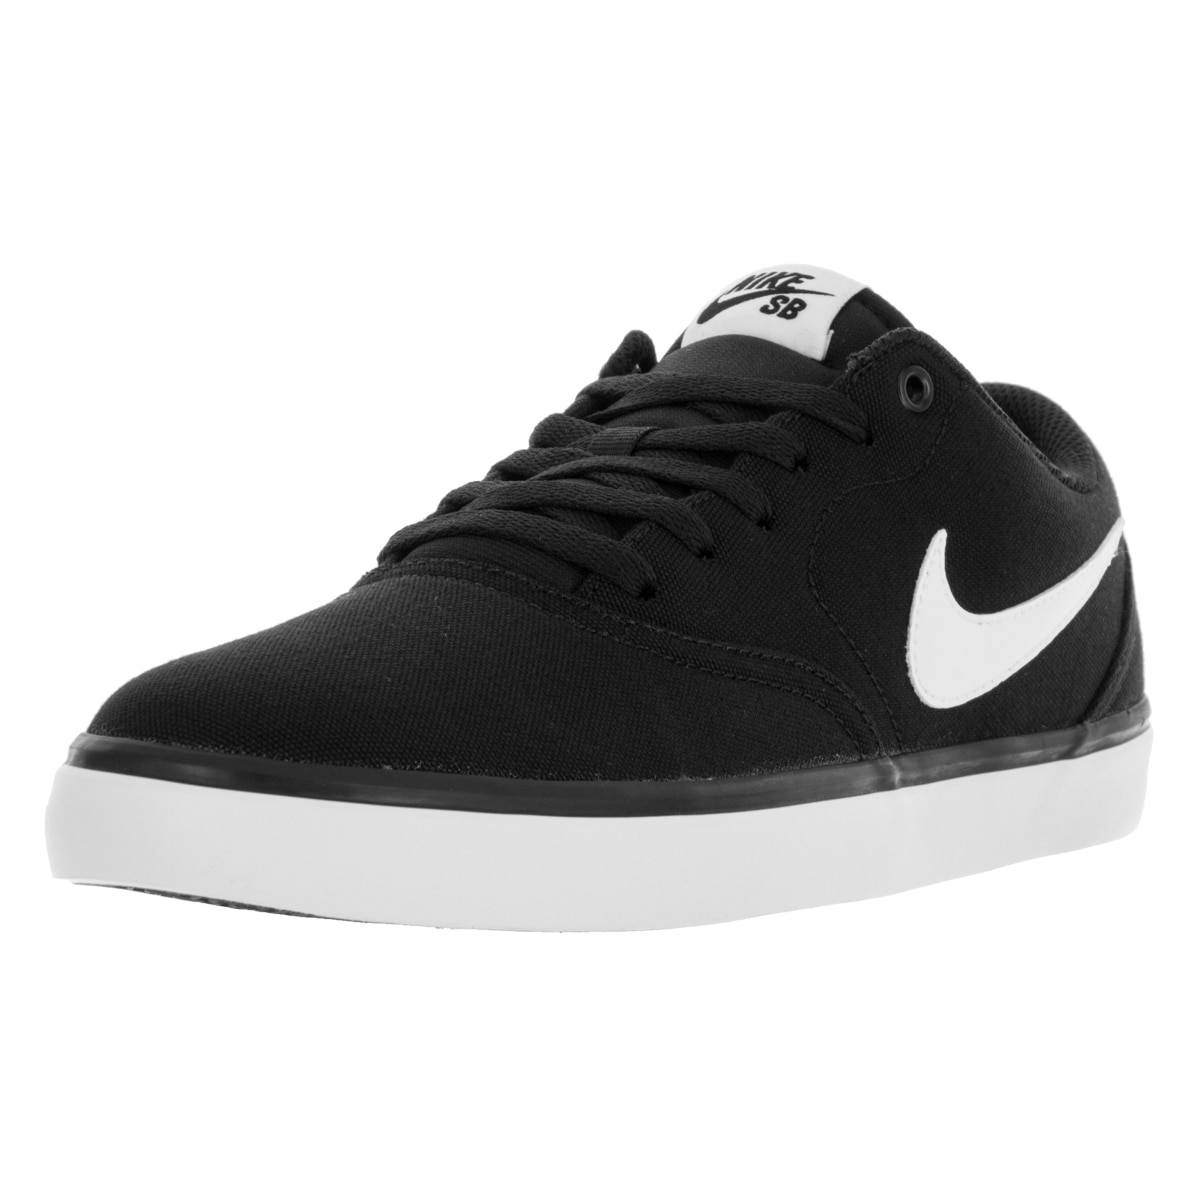 big sale c95df 635e5 Shop Nike Men s SB Check Solar Black White Canvas Skate Shoe - Free  Shipping Today - Overstock - 13395687